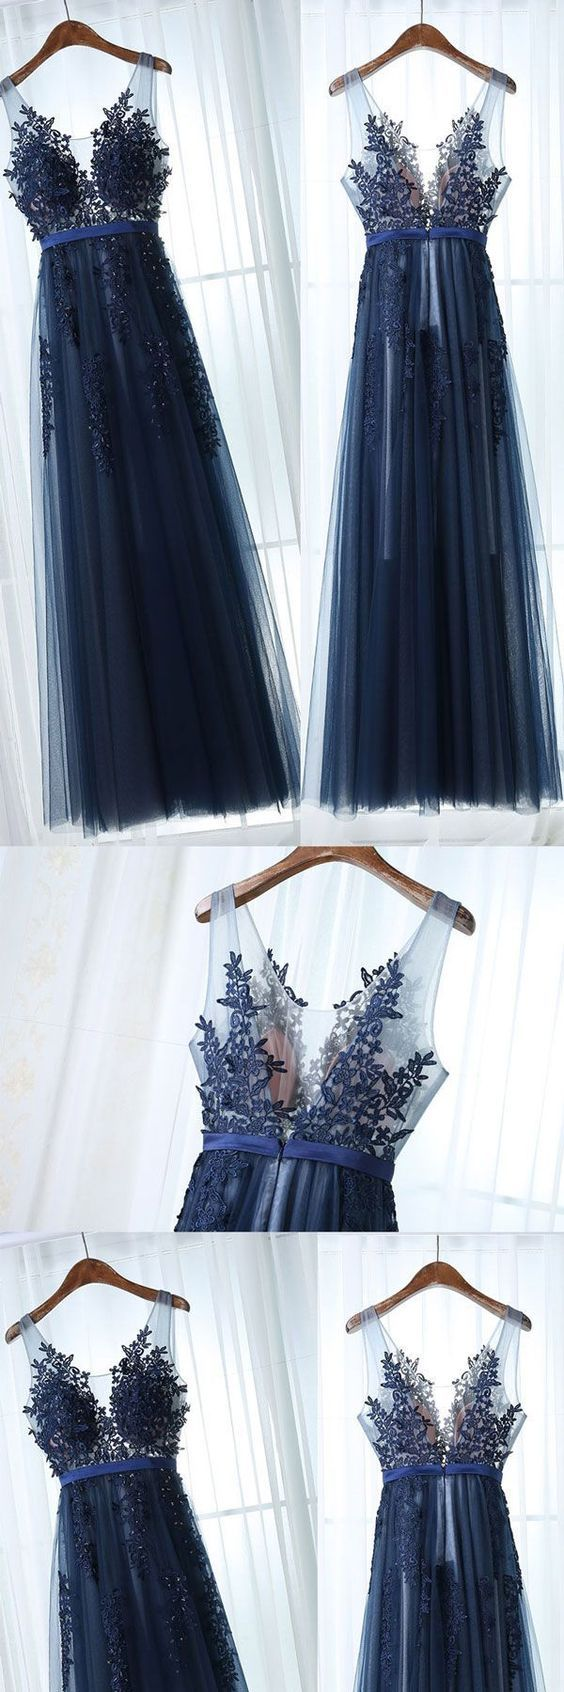 Charming Dark Blue Prom Dress,Floor Length Evening Dress,Sleeveless Party Dress,Appliques Prom Gown